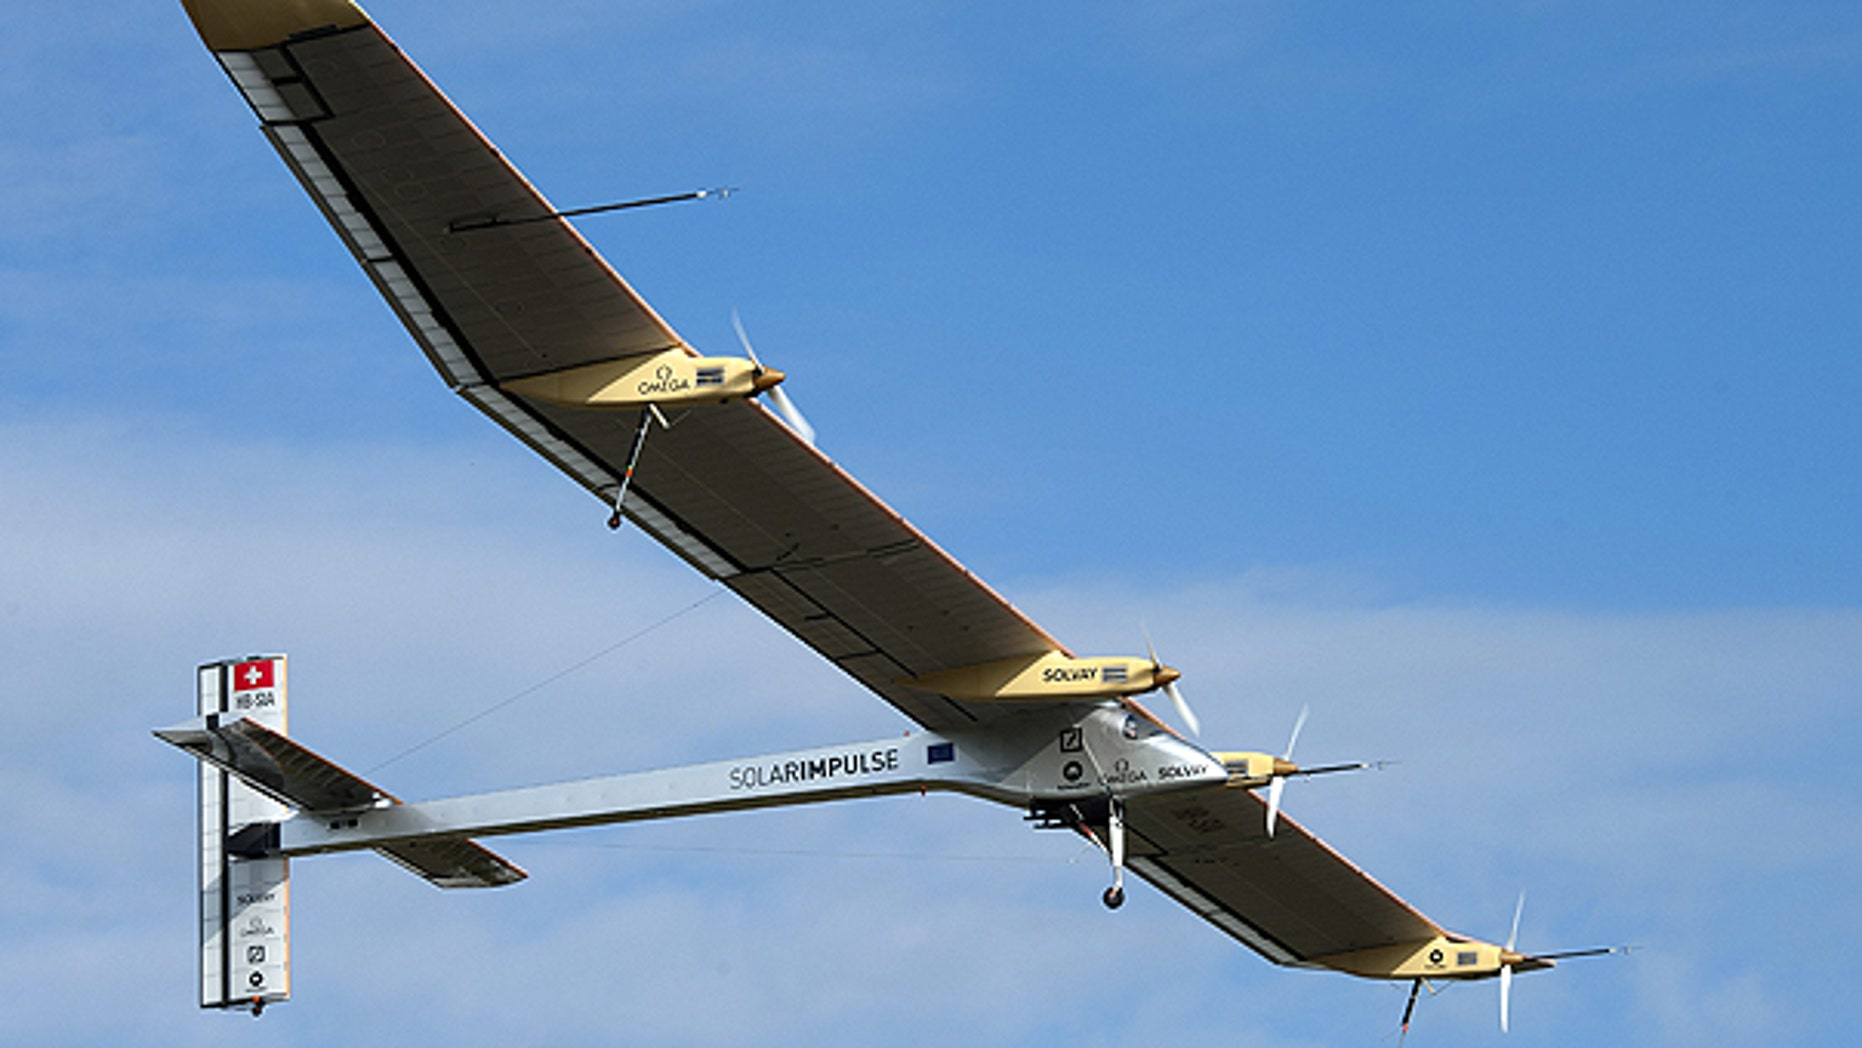 May 13: he experimental aircraft 'Solar Impulse' takes off for its first international flight to Brussels at the airbase in Payerne, Switzerland.